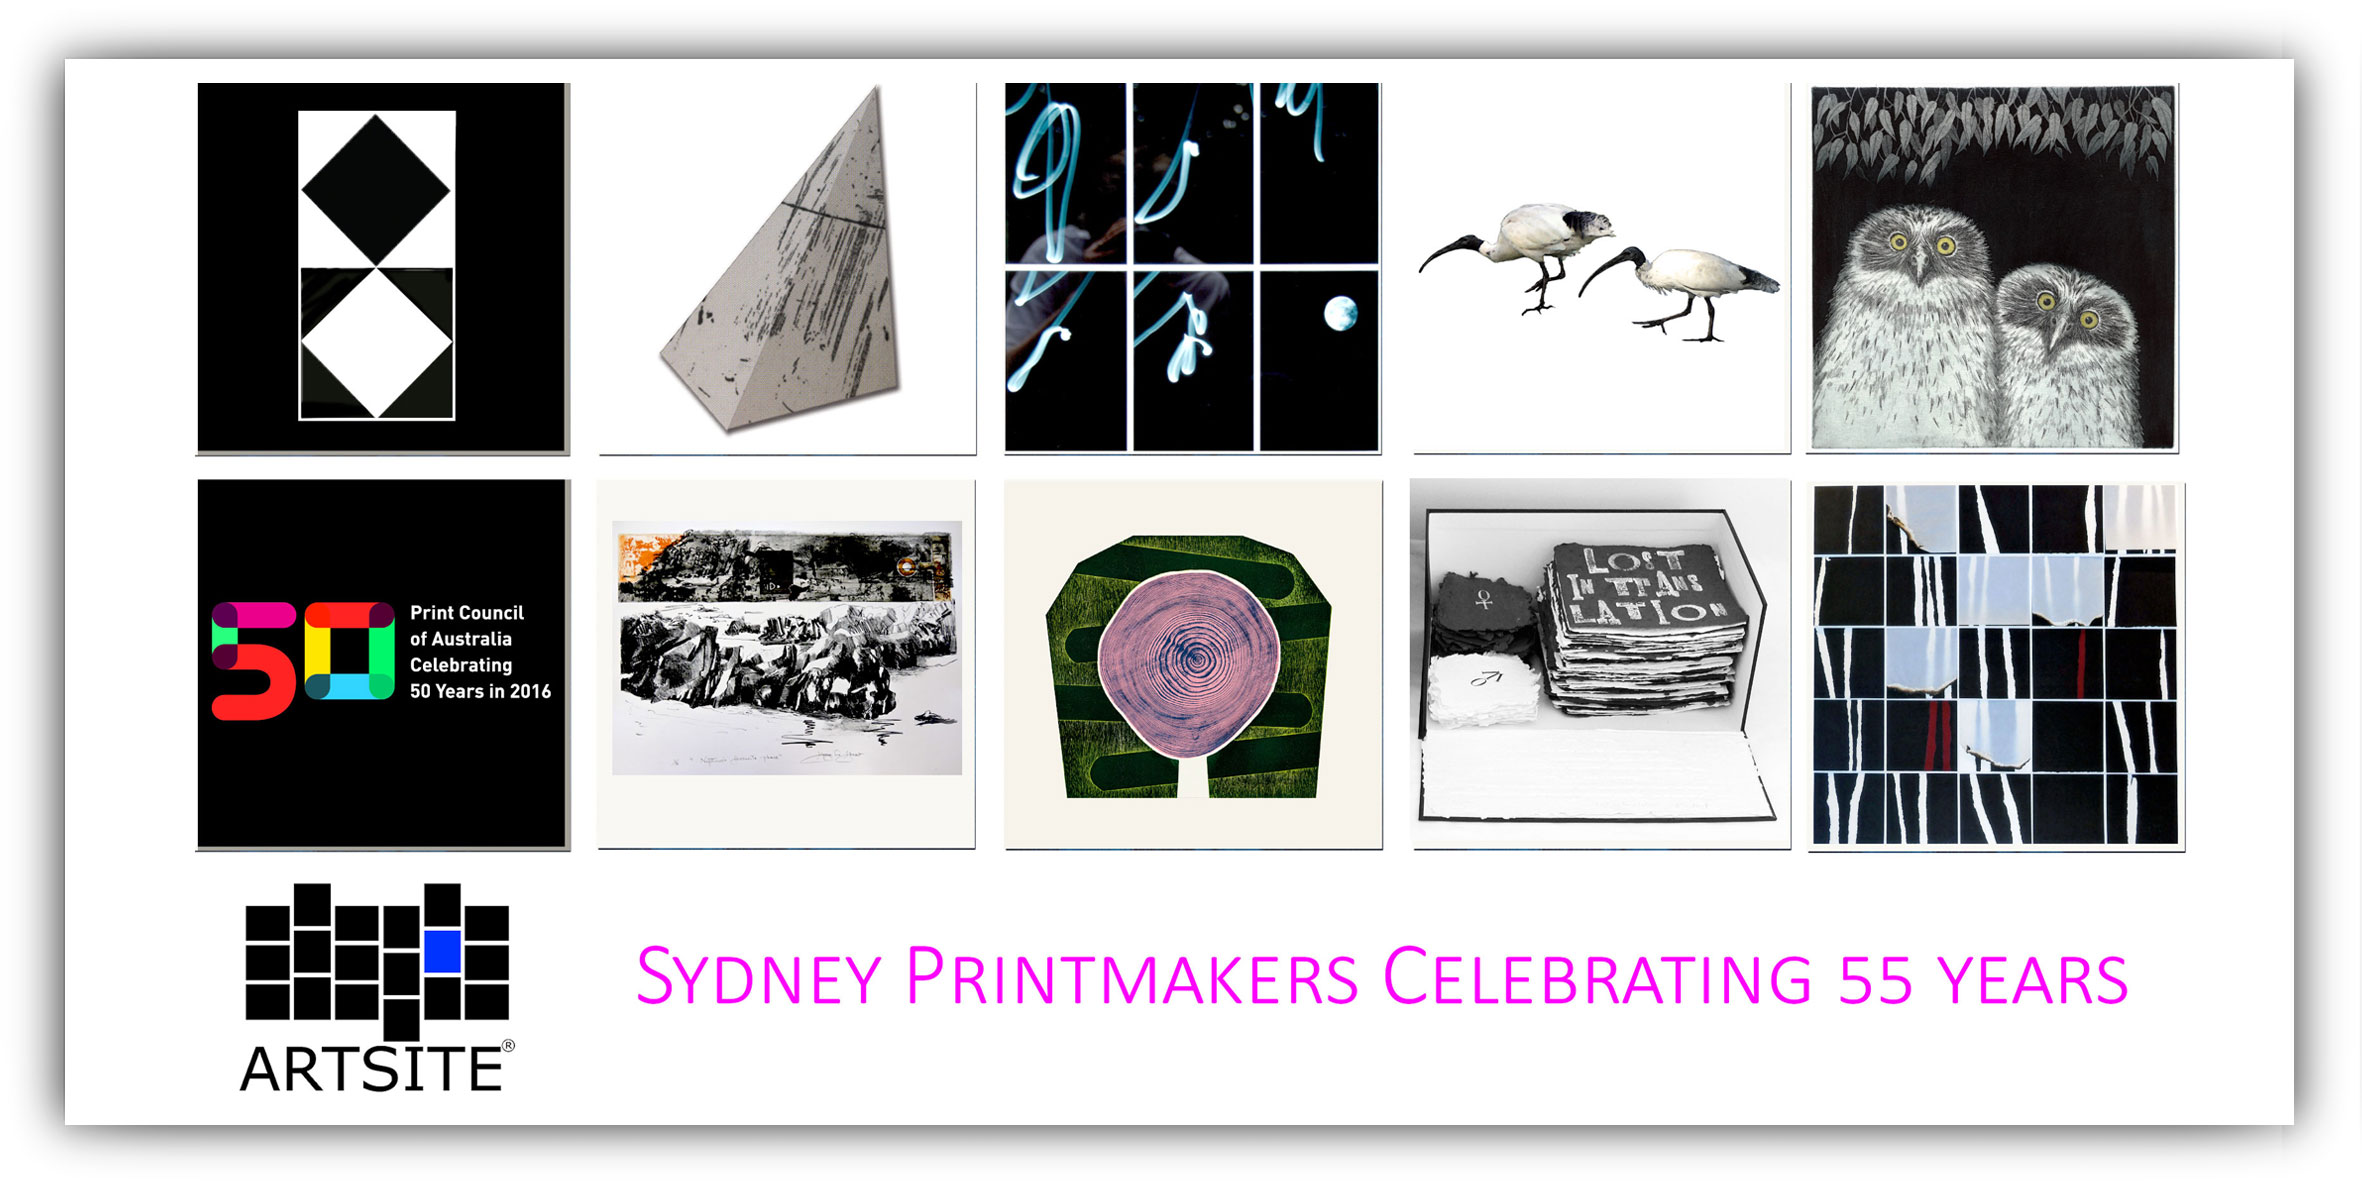 Artsite Gallery Exhibition - Sydney Printmakers Celebrating 55 years - 1961-2016 An Exhibition from Australia's top artist printmakers in both traditional & contemporary practice. Artsite Gallery 05 - 27 March 2016 - join the artists at the opening on Sunday 6th March 3-5pm - All Welcome